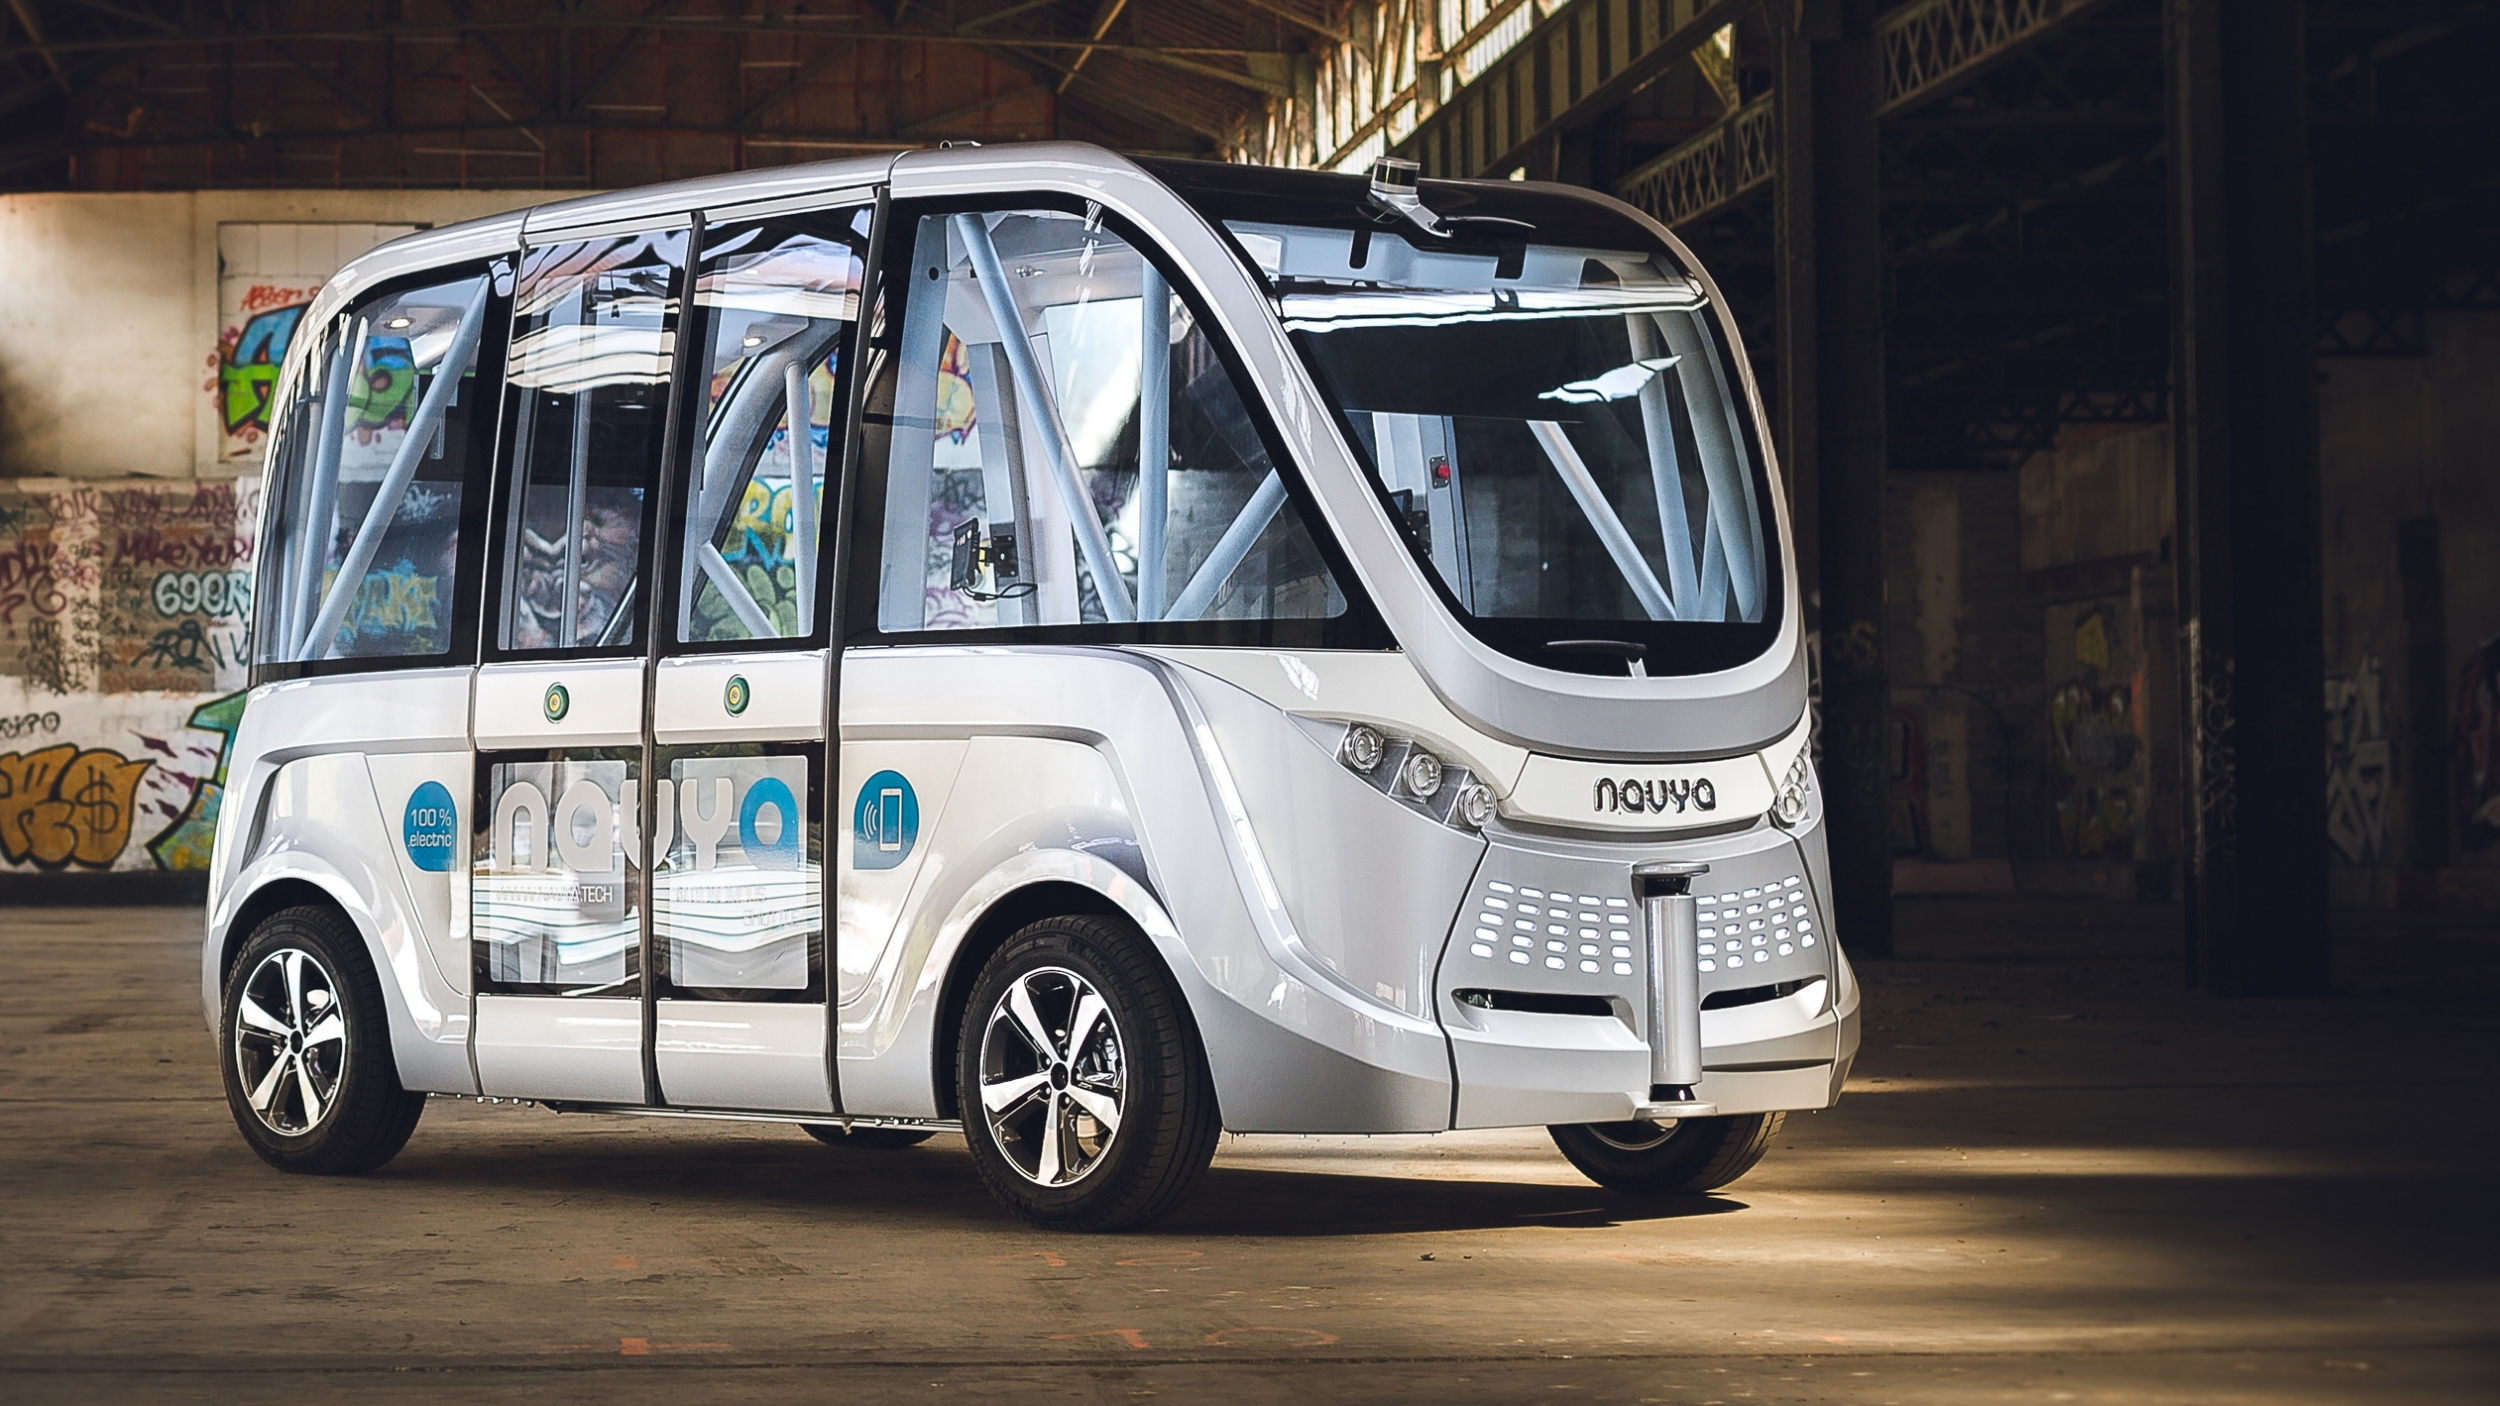 News Navya Driverless Shuttle Begins Service In Victoria